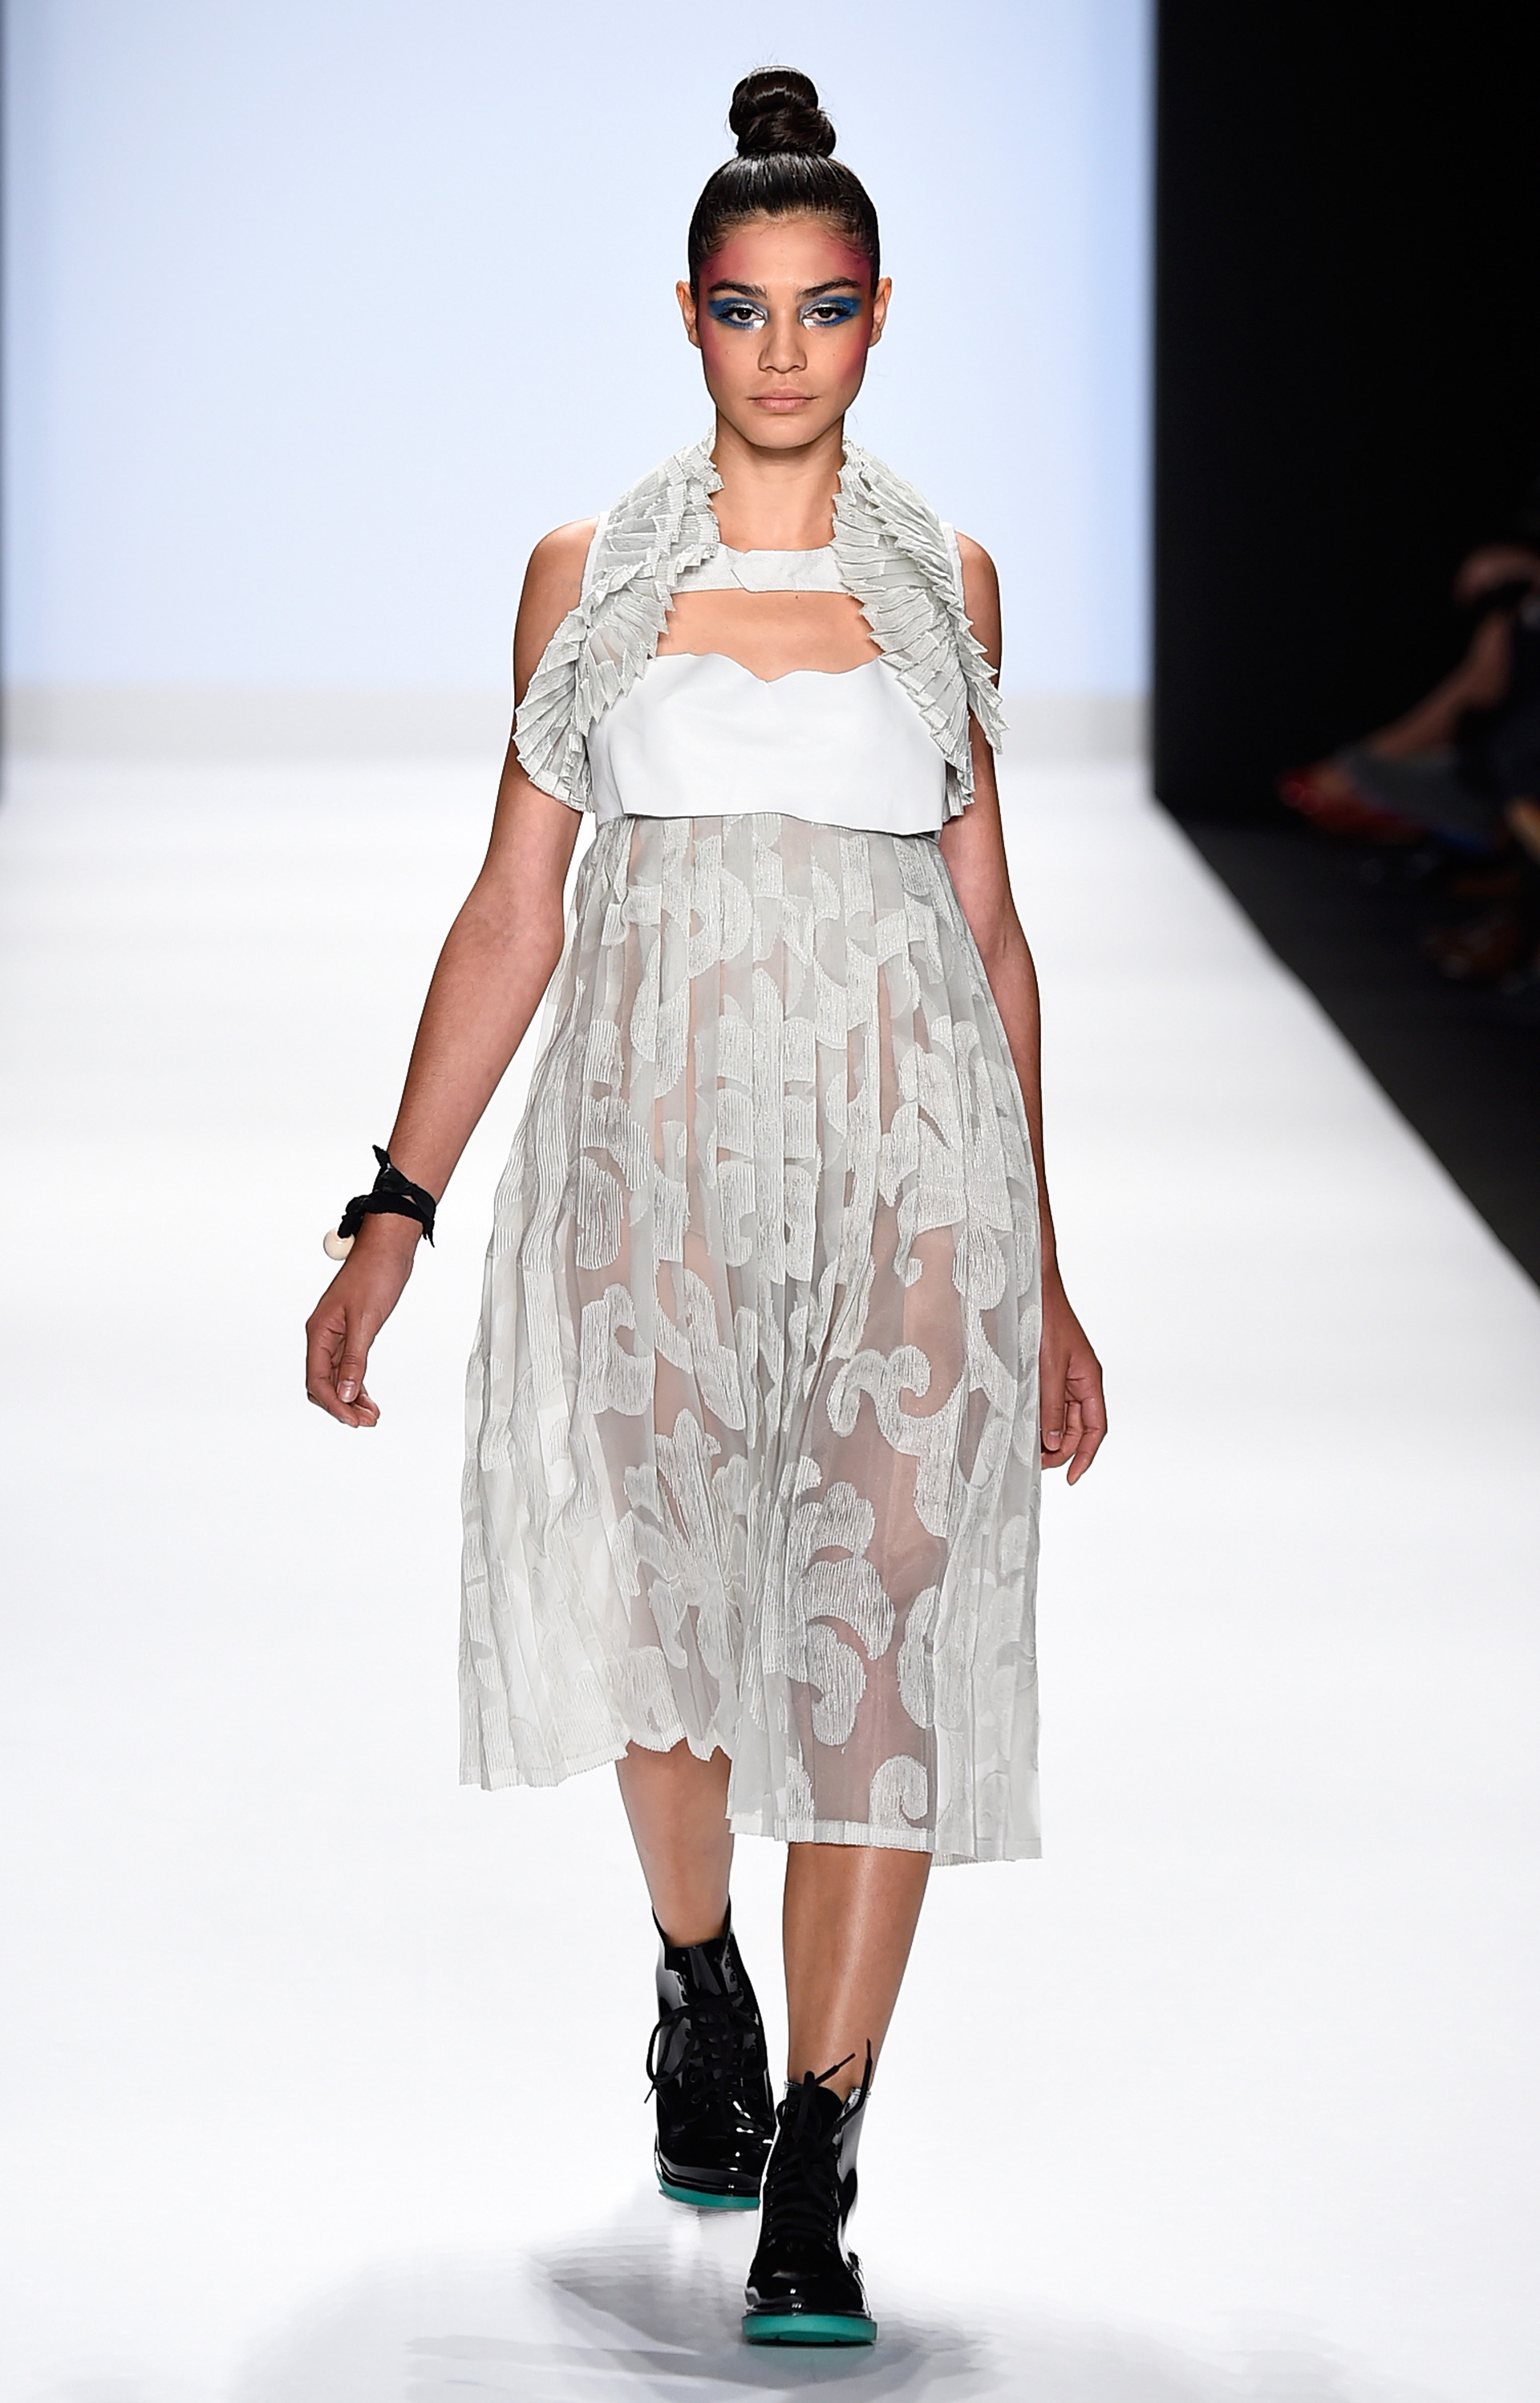 Project Runway's Fashion Week show 6